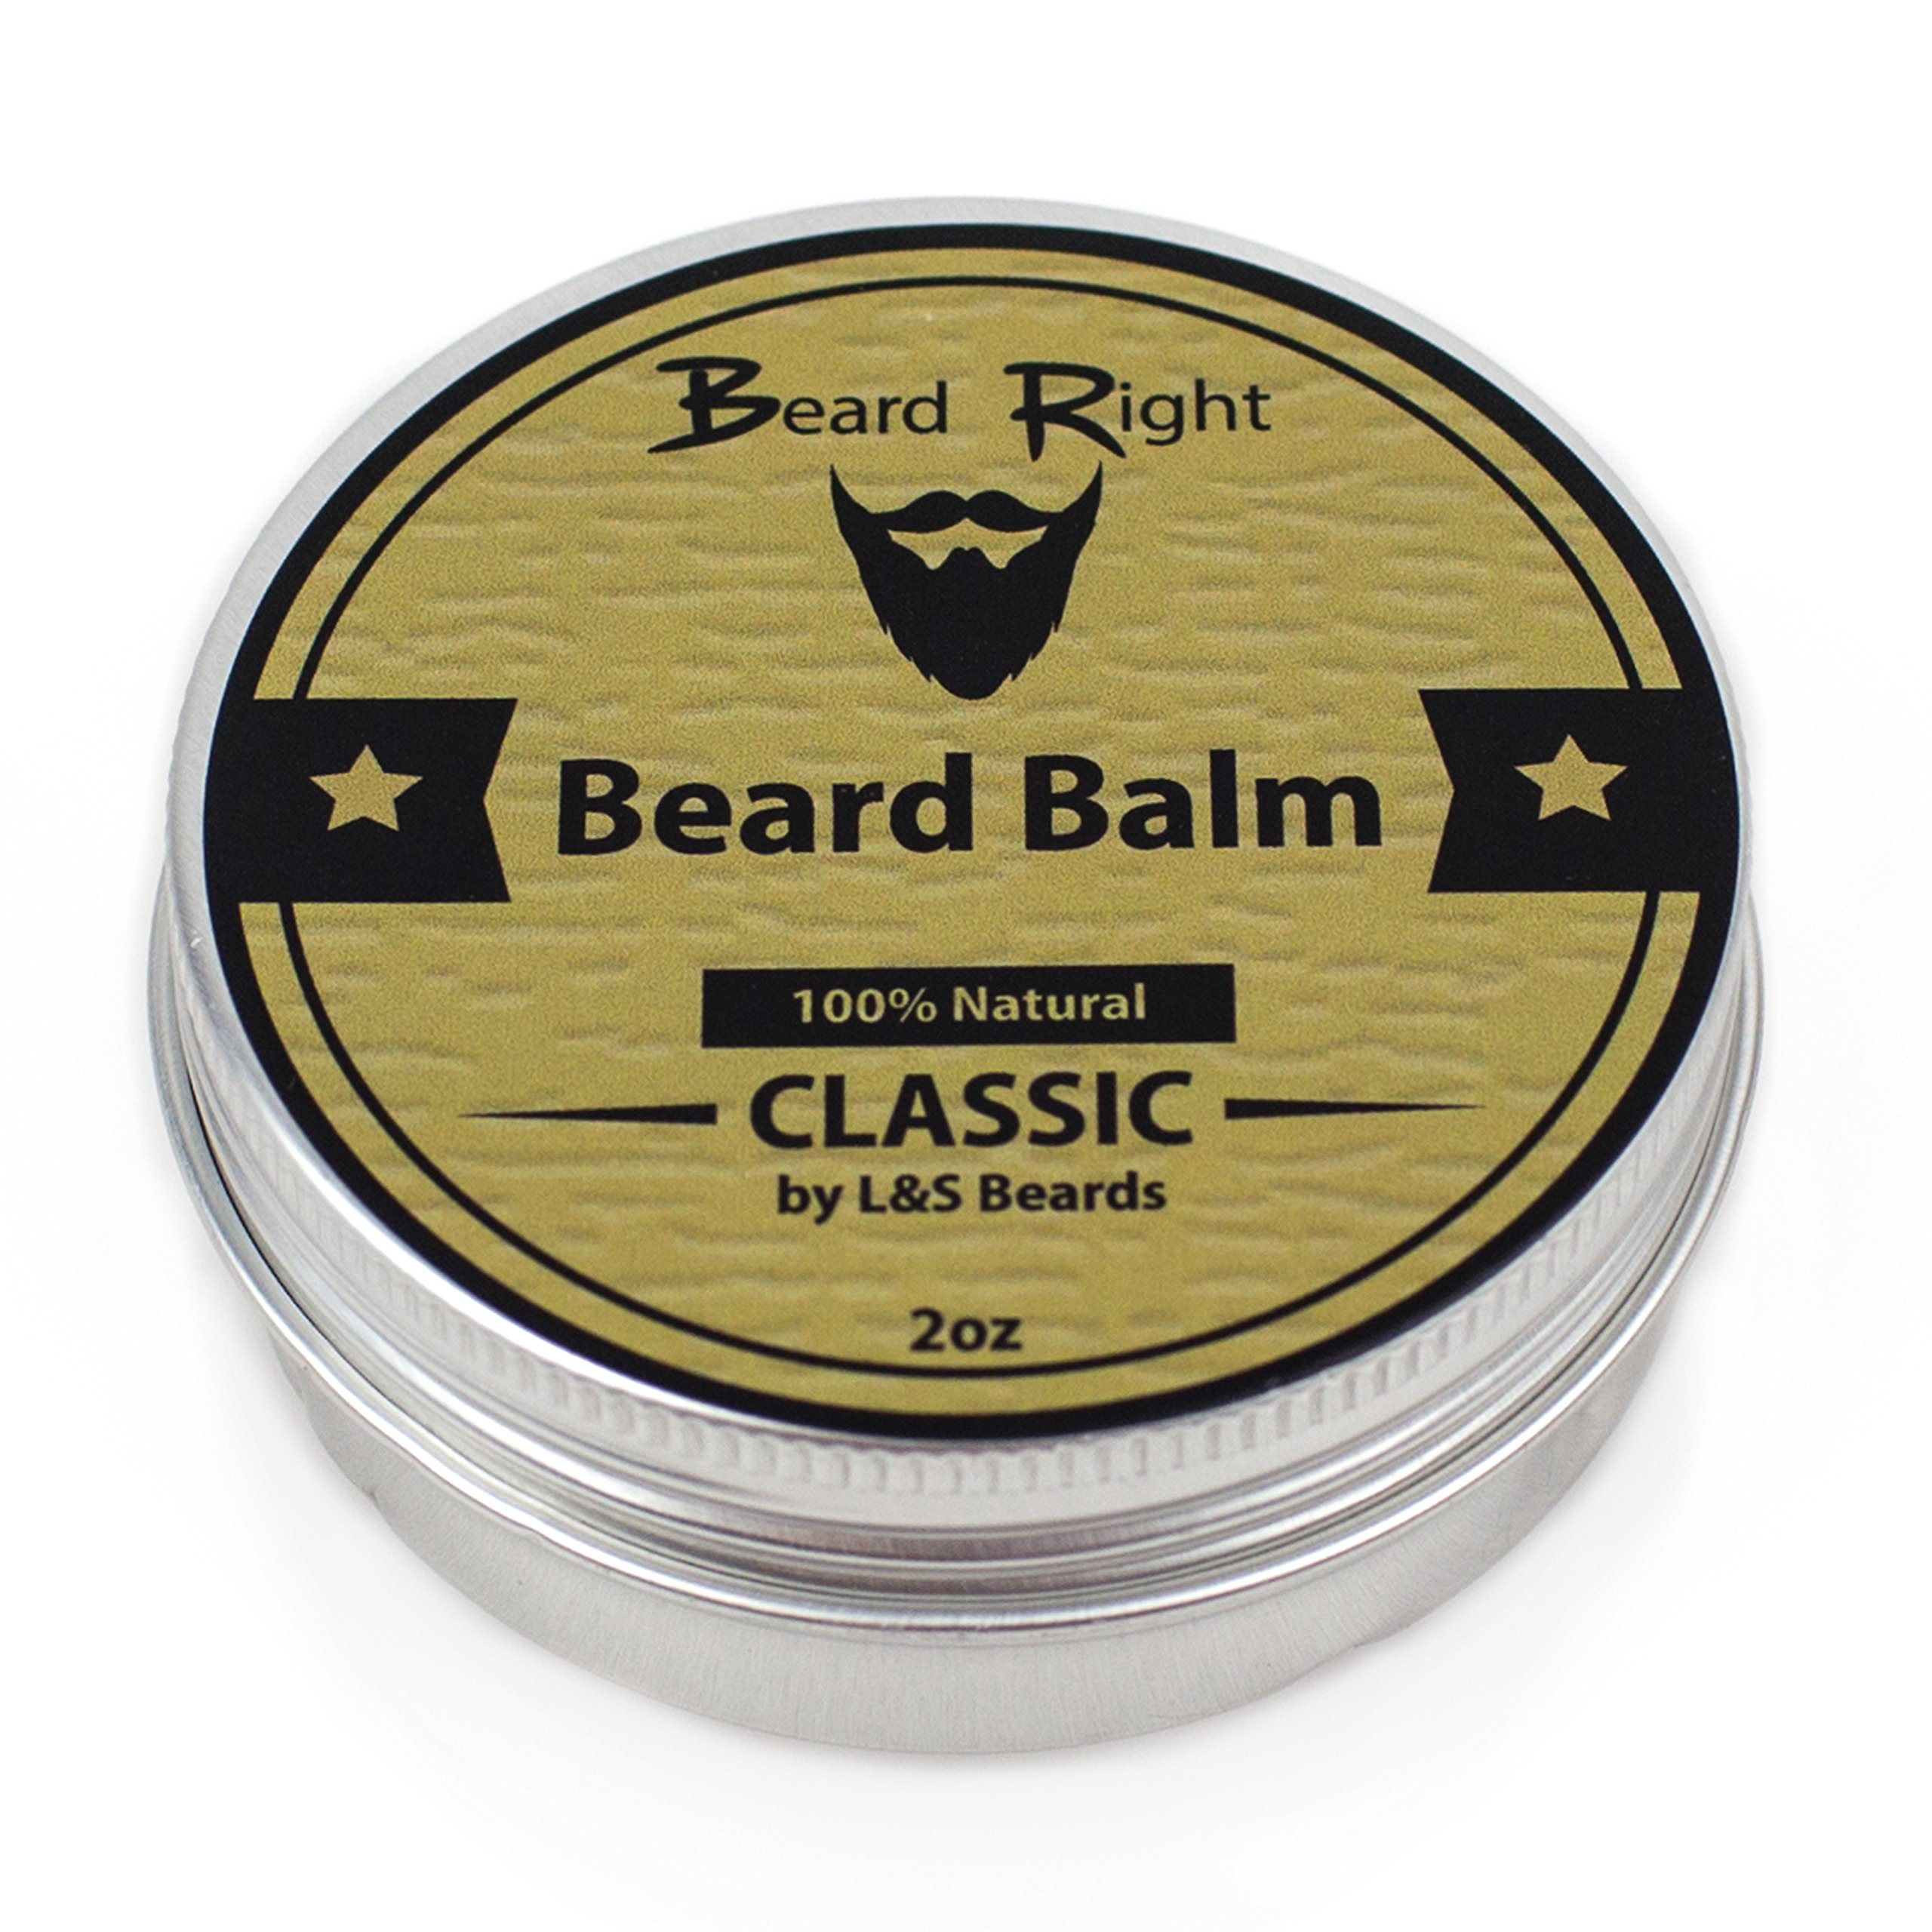 Beard Right Beard Balm Organic and Scented w/ Natural Shea Butter and Argan Oil- 2oz, Give Your Beard It's RIght